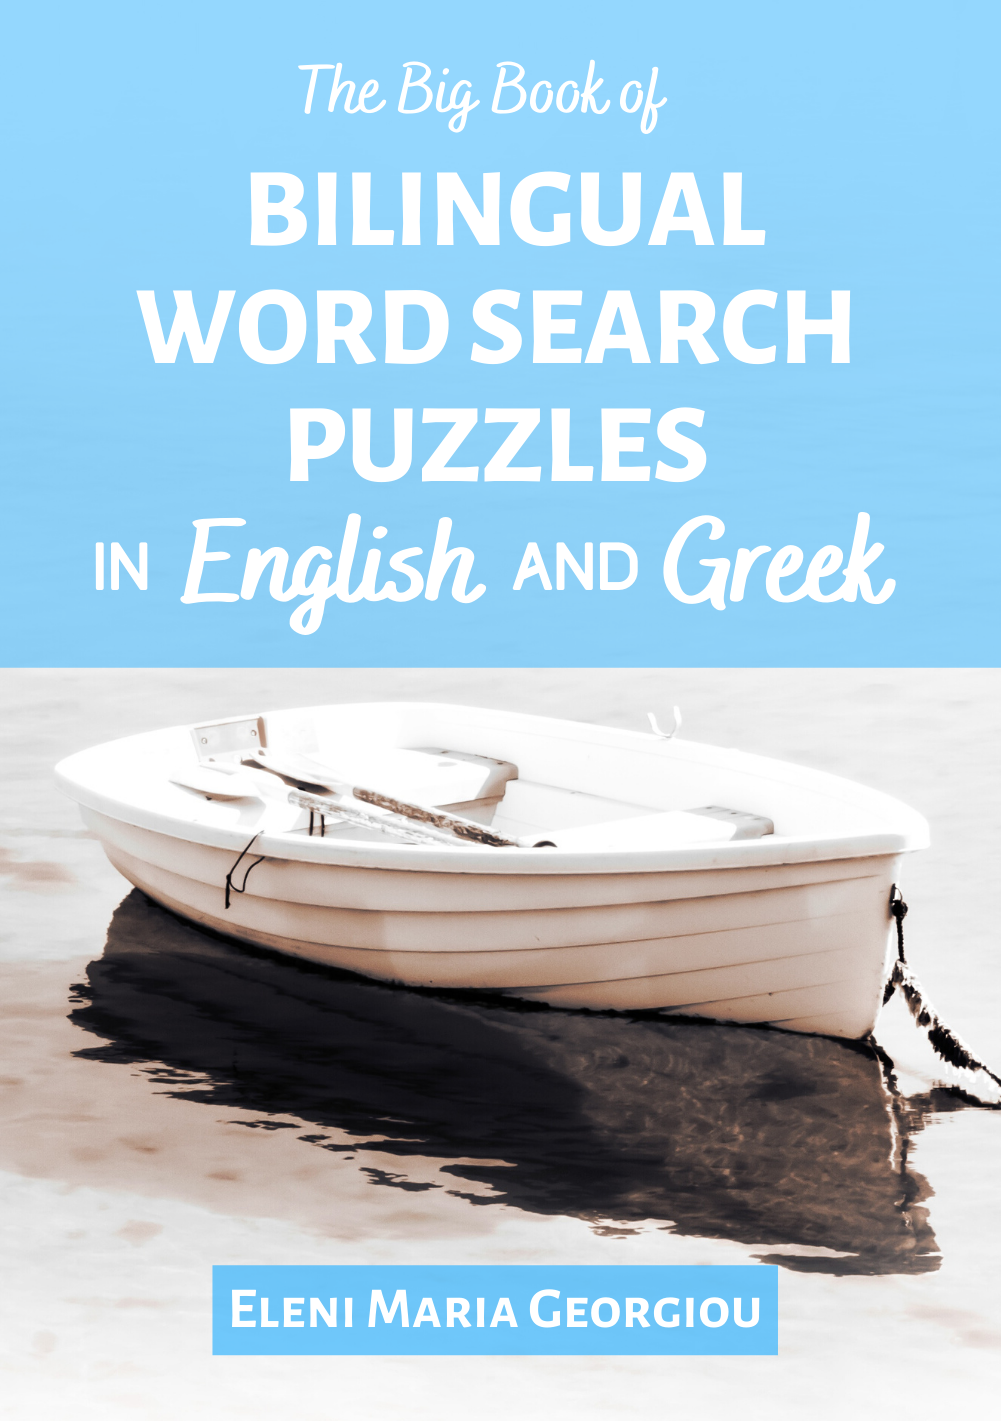 The Big Book of Bilingual Word Search Puzzles in English and Greek